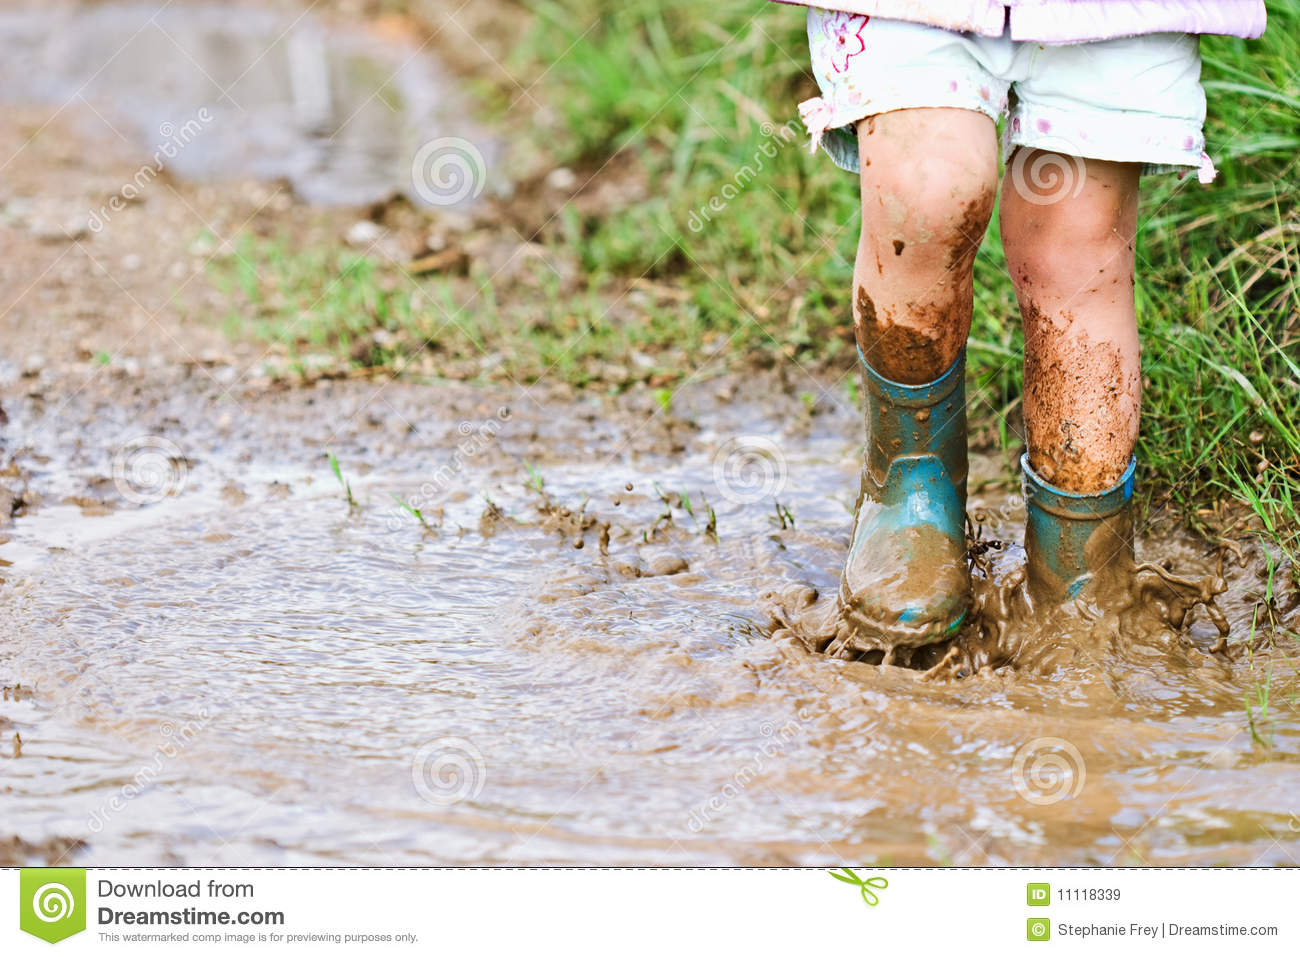 child jumping in mud puddle stock image image of boots person 11118339. Black Bedroom Furniture Sets. Home Design Ideas